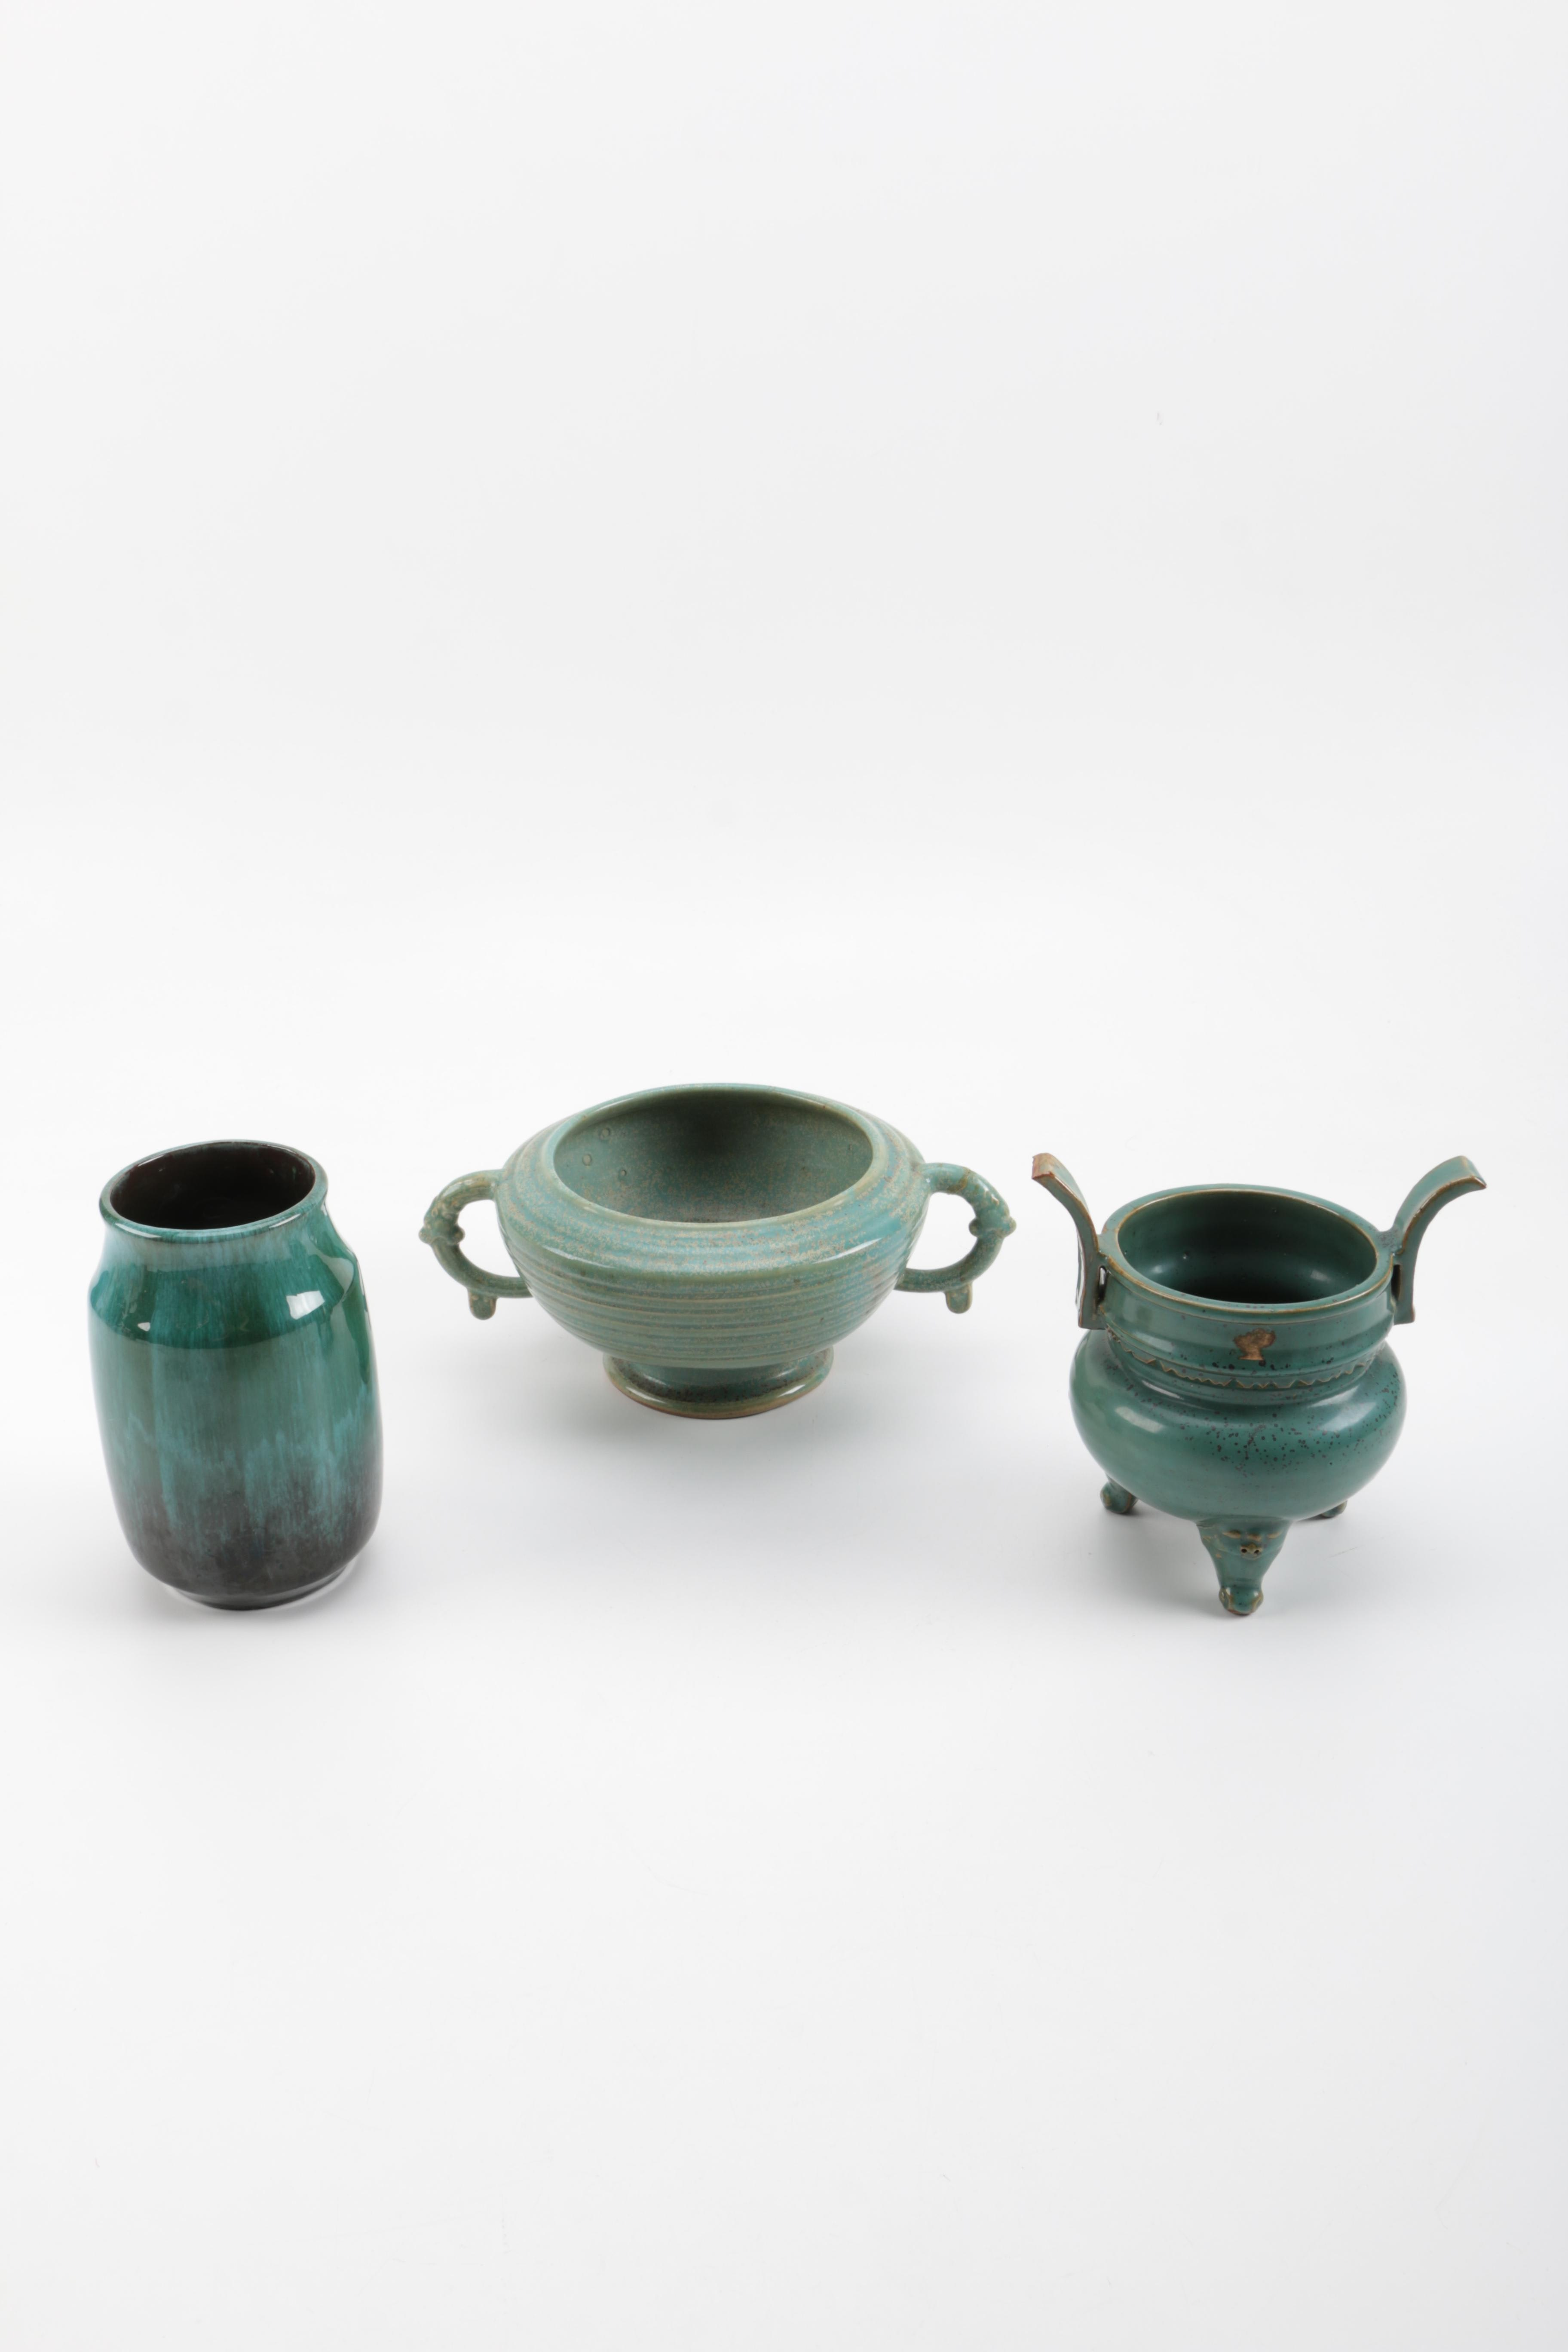 Selection of Green East Asian Pottery Pieces